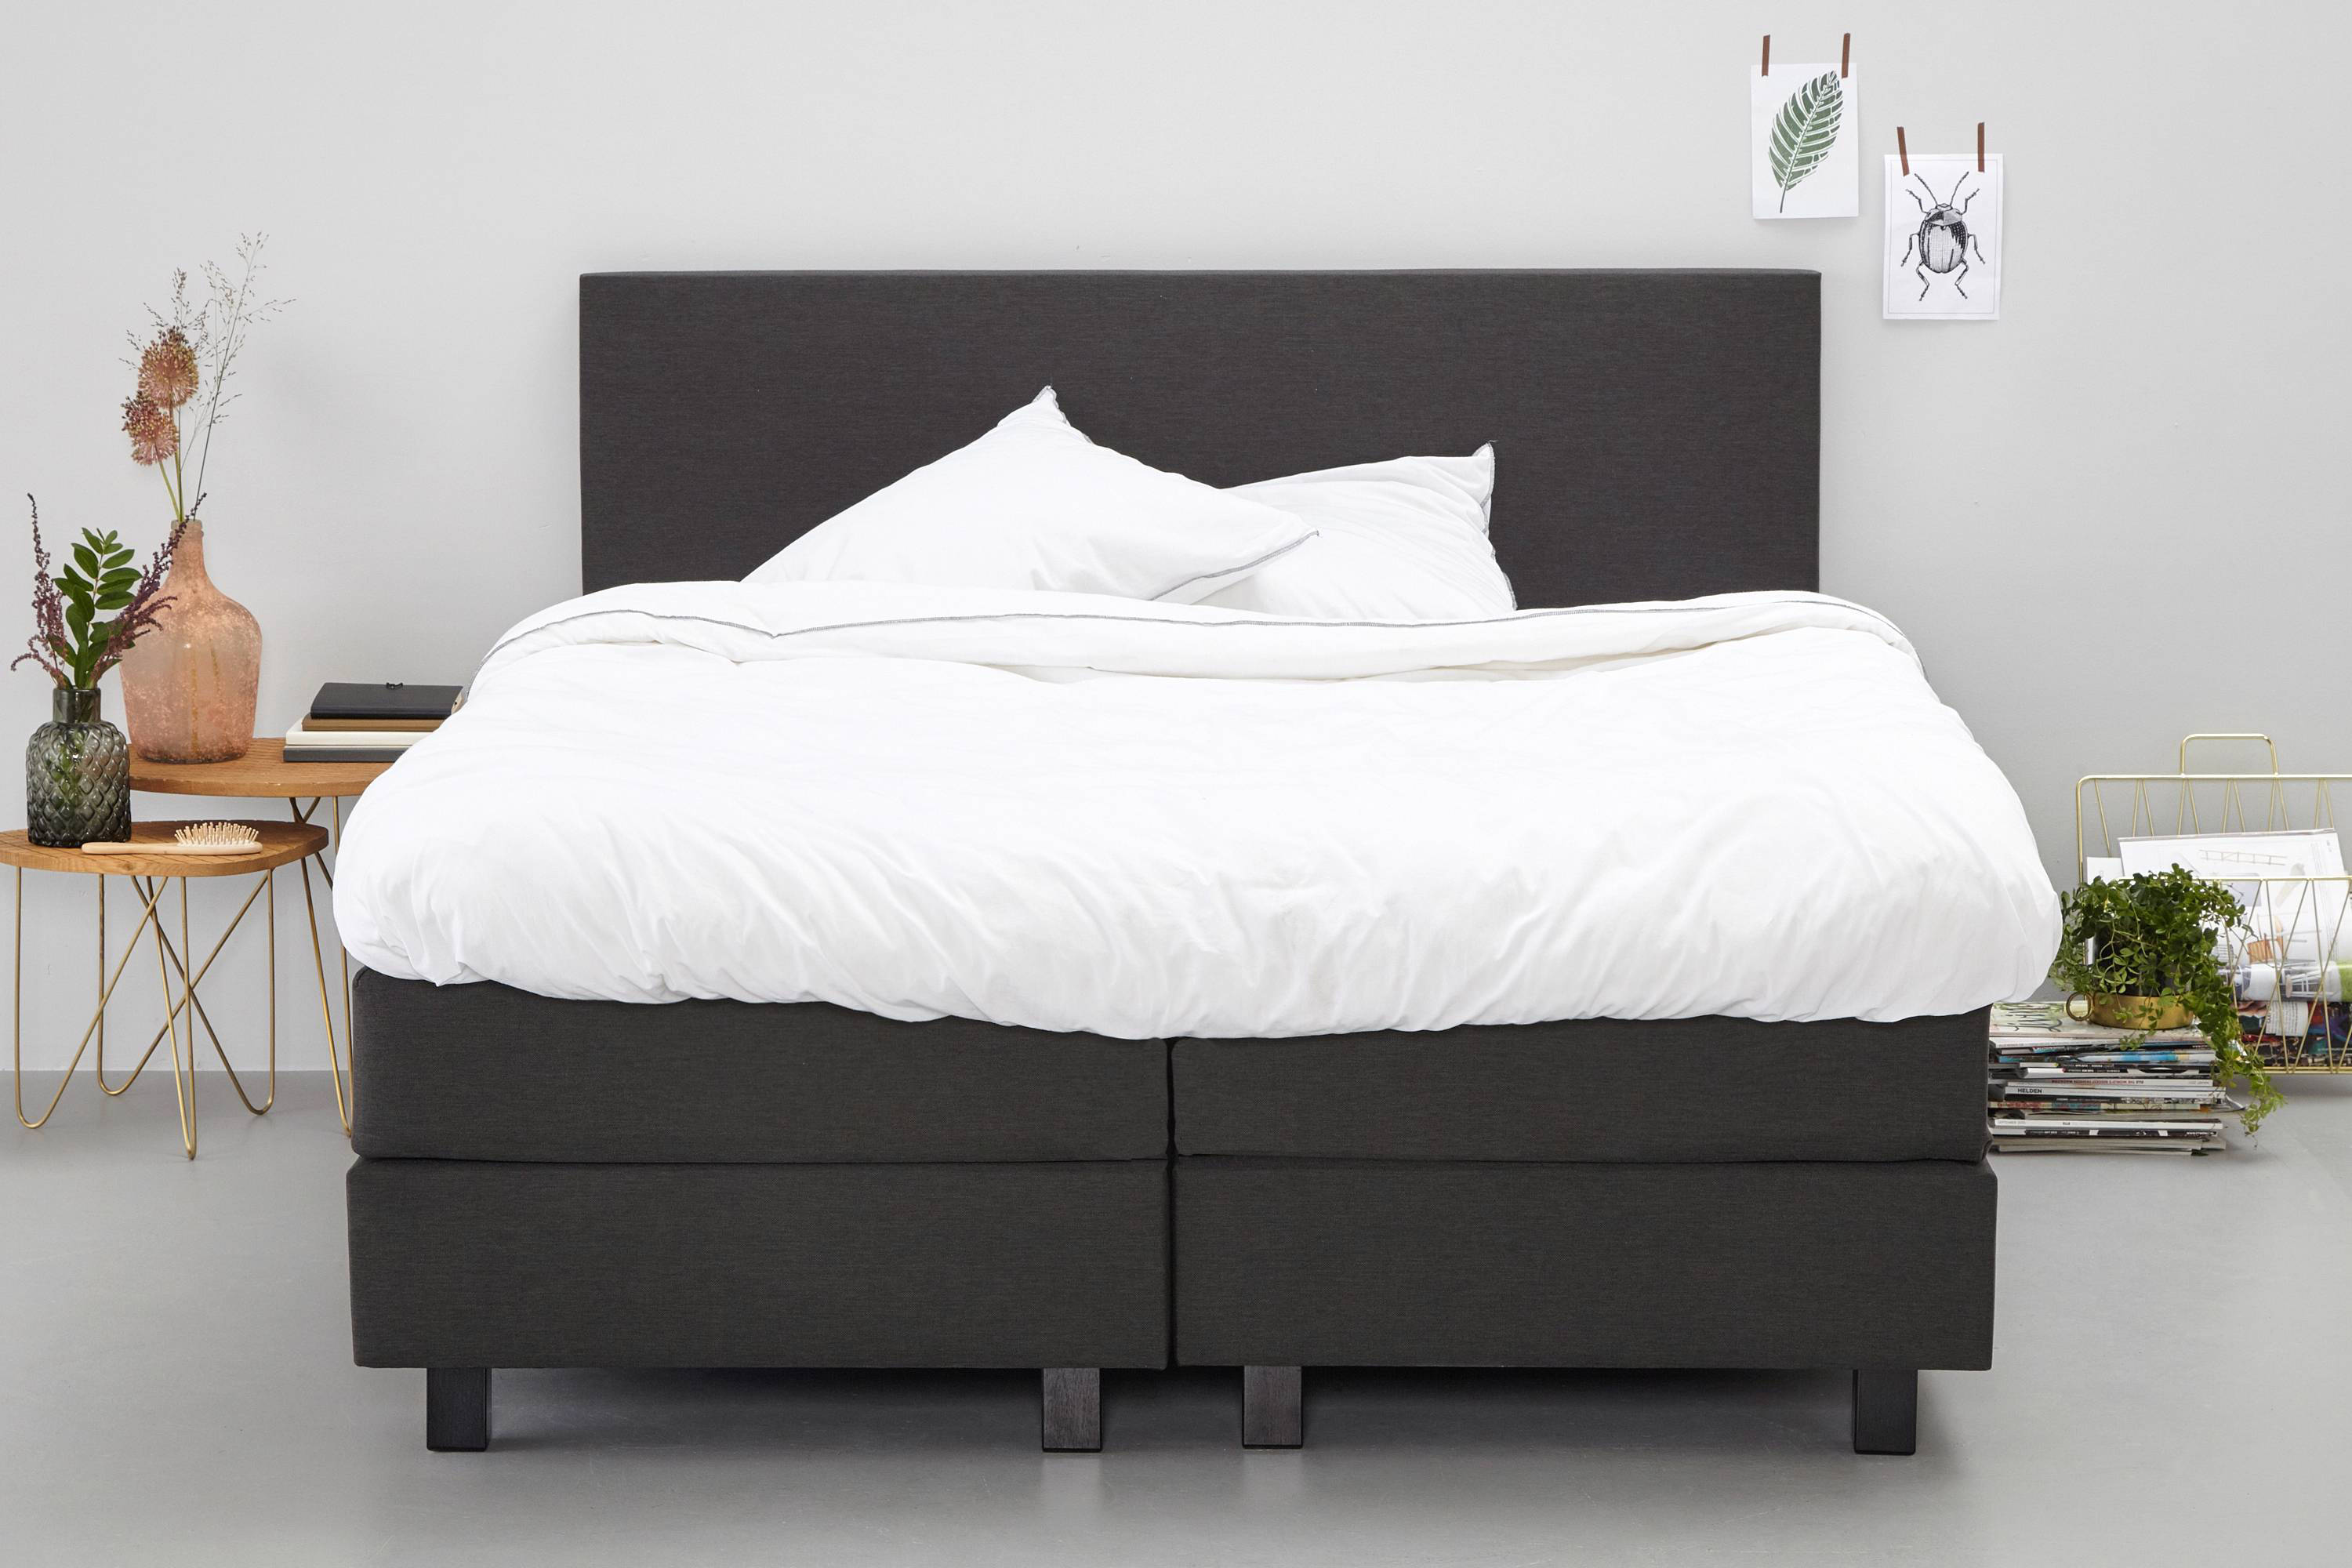 whkmp's own complete boxspring Kiev